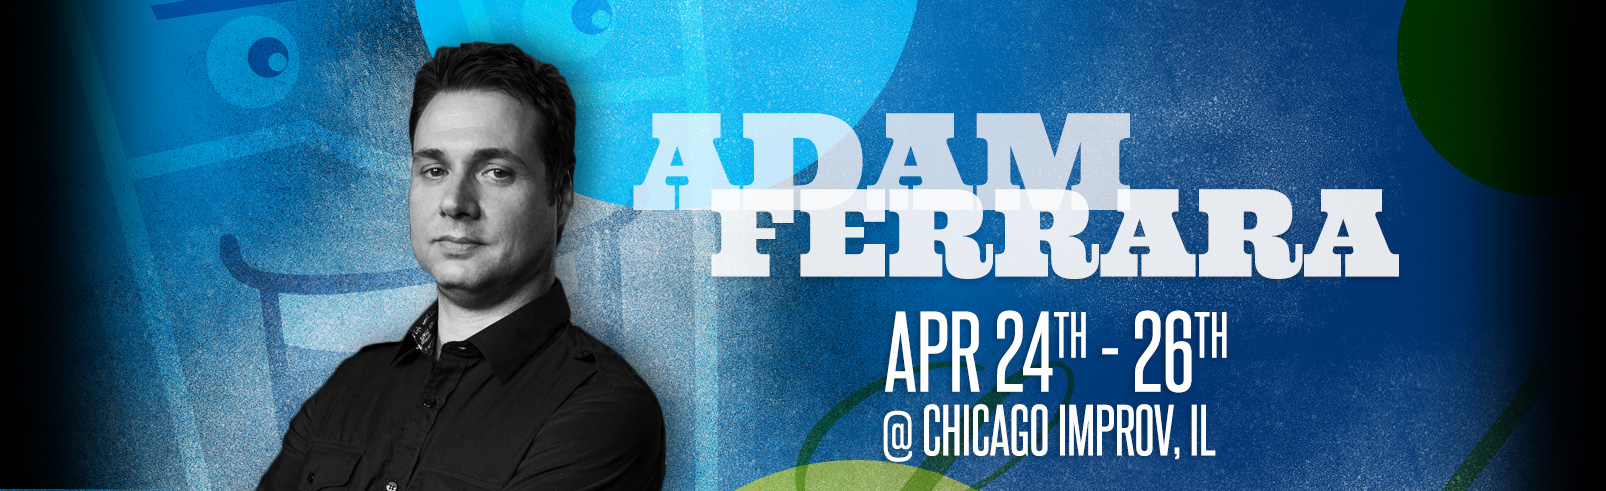 Adam Ferrara @Chicago Improv